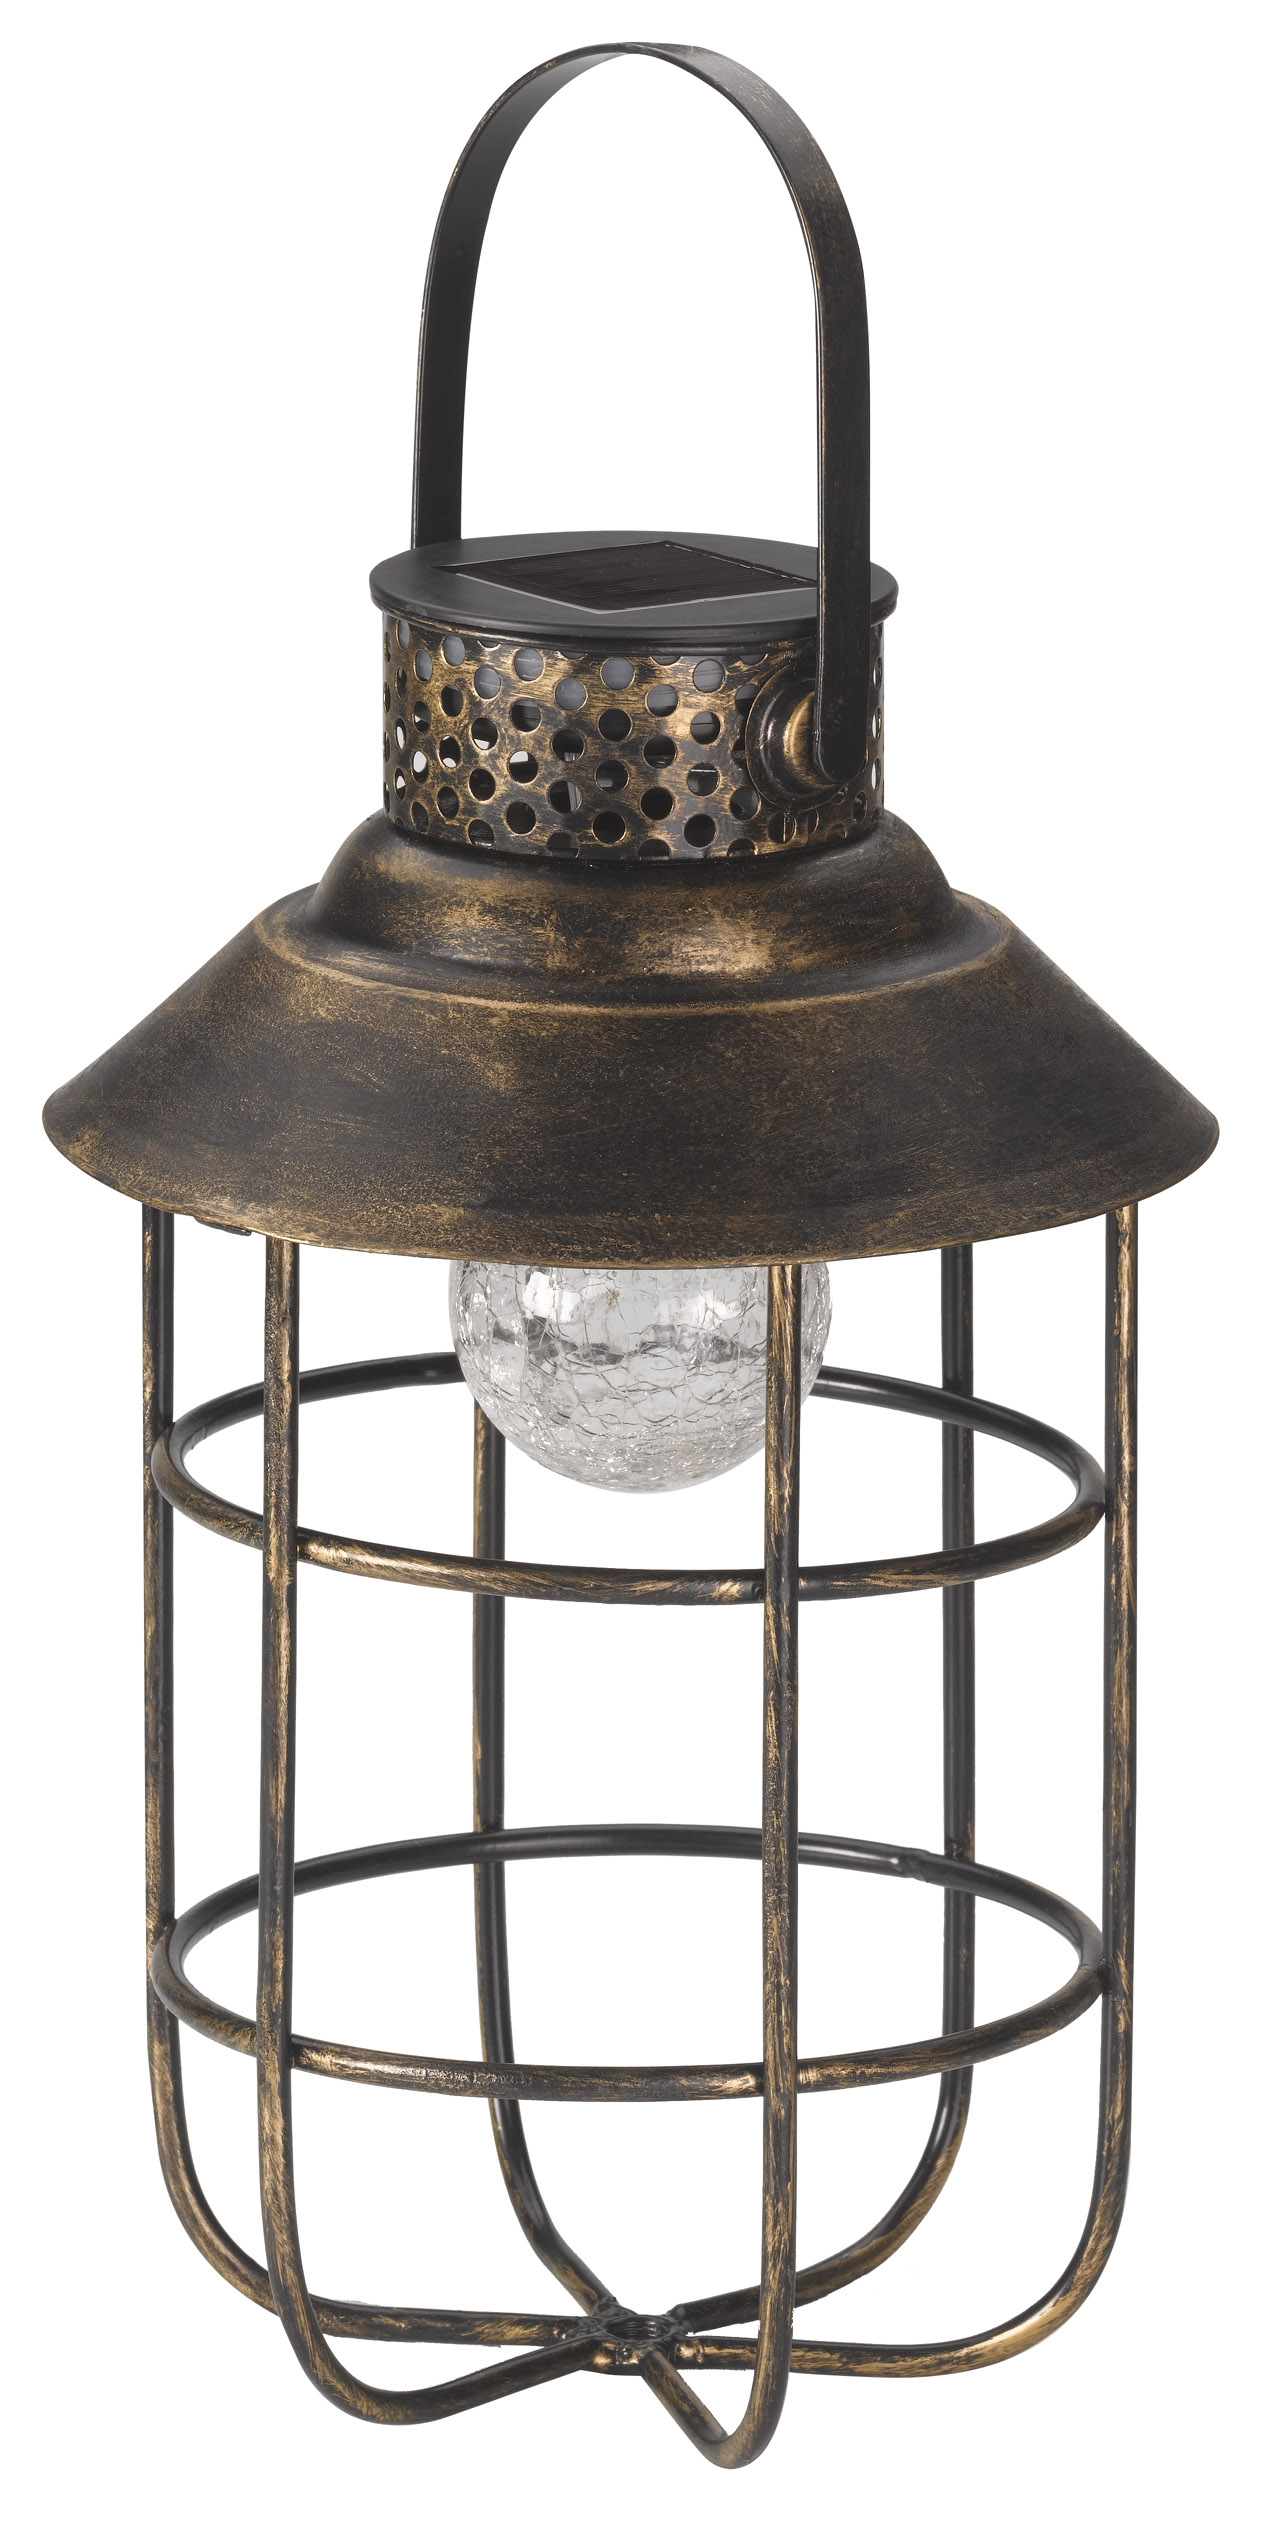 solar powered decorative lanterns zephyr smart solar decorative metal garden lantern solar 5594